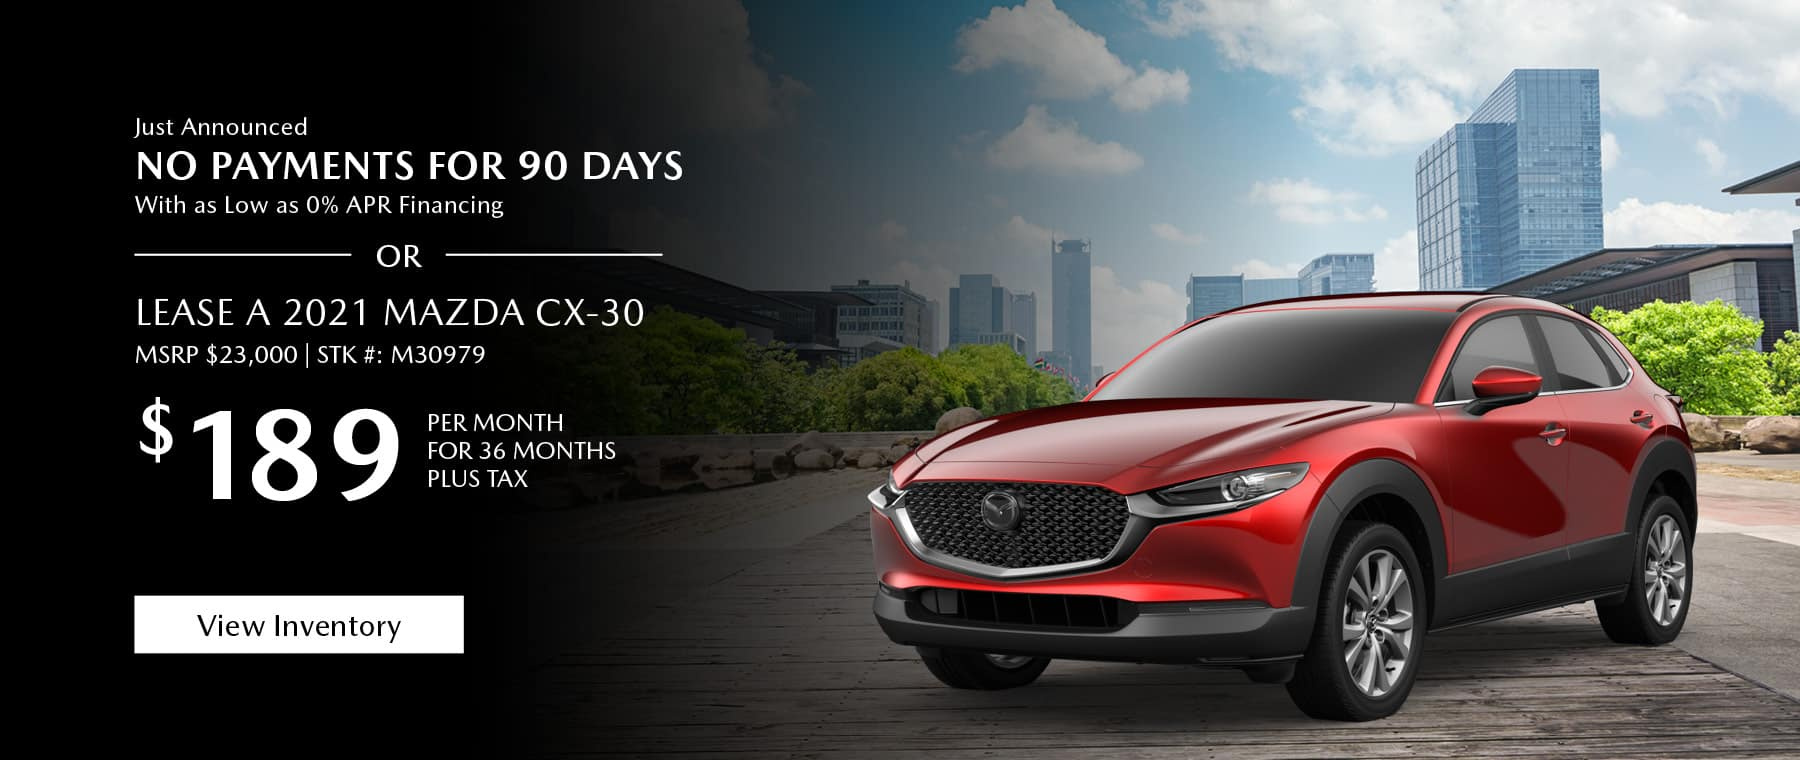 Just Announced, No payments for 90 days with as low as %0 APR financing, or lease the 2021 Mazda CX-30 for $189 per month, plus tax for 36 months. Click or tap here to view our inventory.